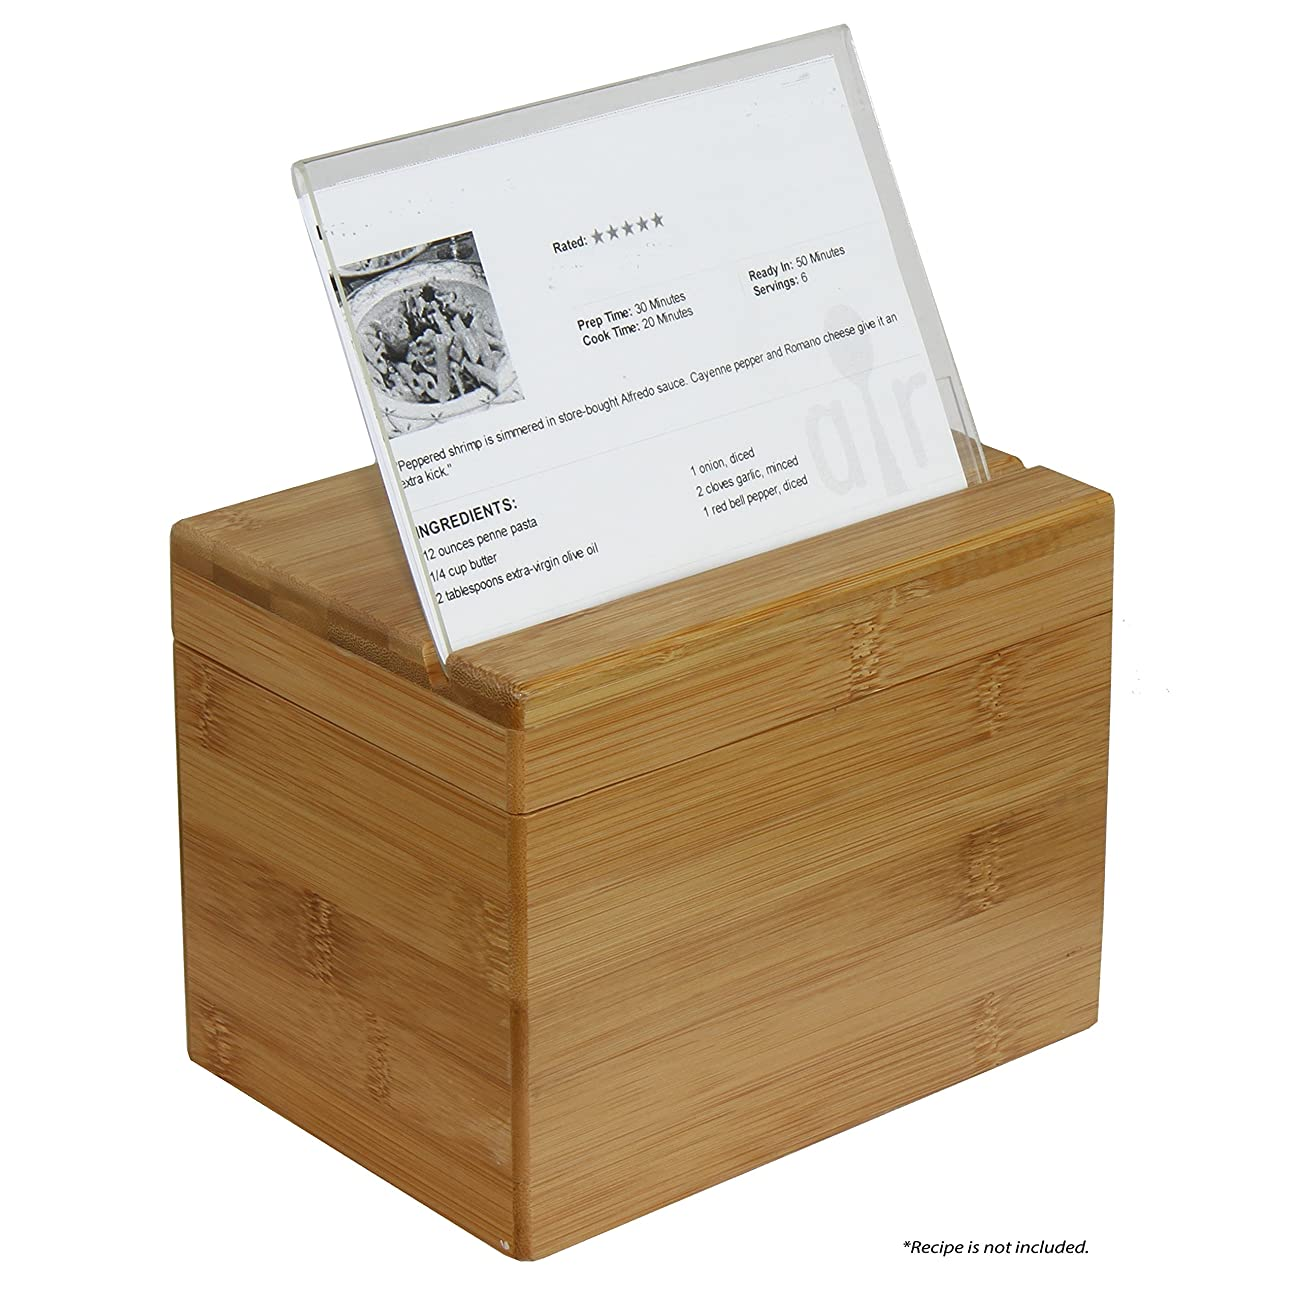 Oceanstar Bamboo Recipe Box with Divider, Natural 3